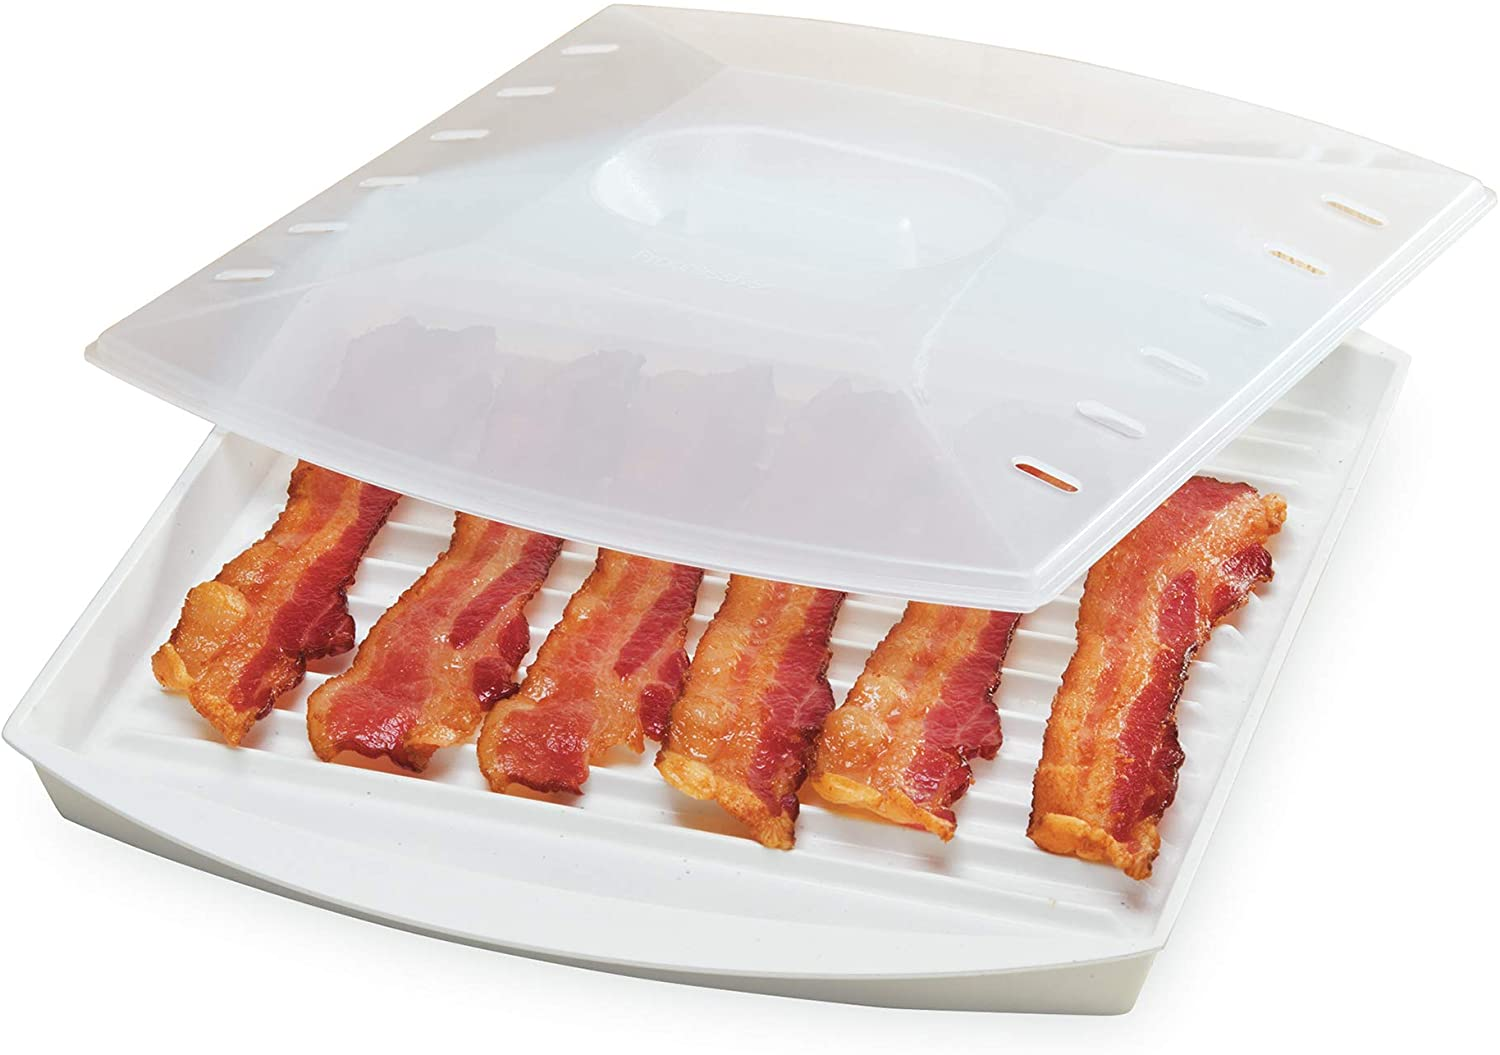 microwave bacon plate with bacon and lid